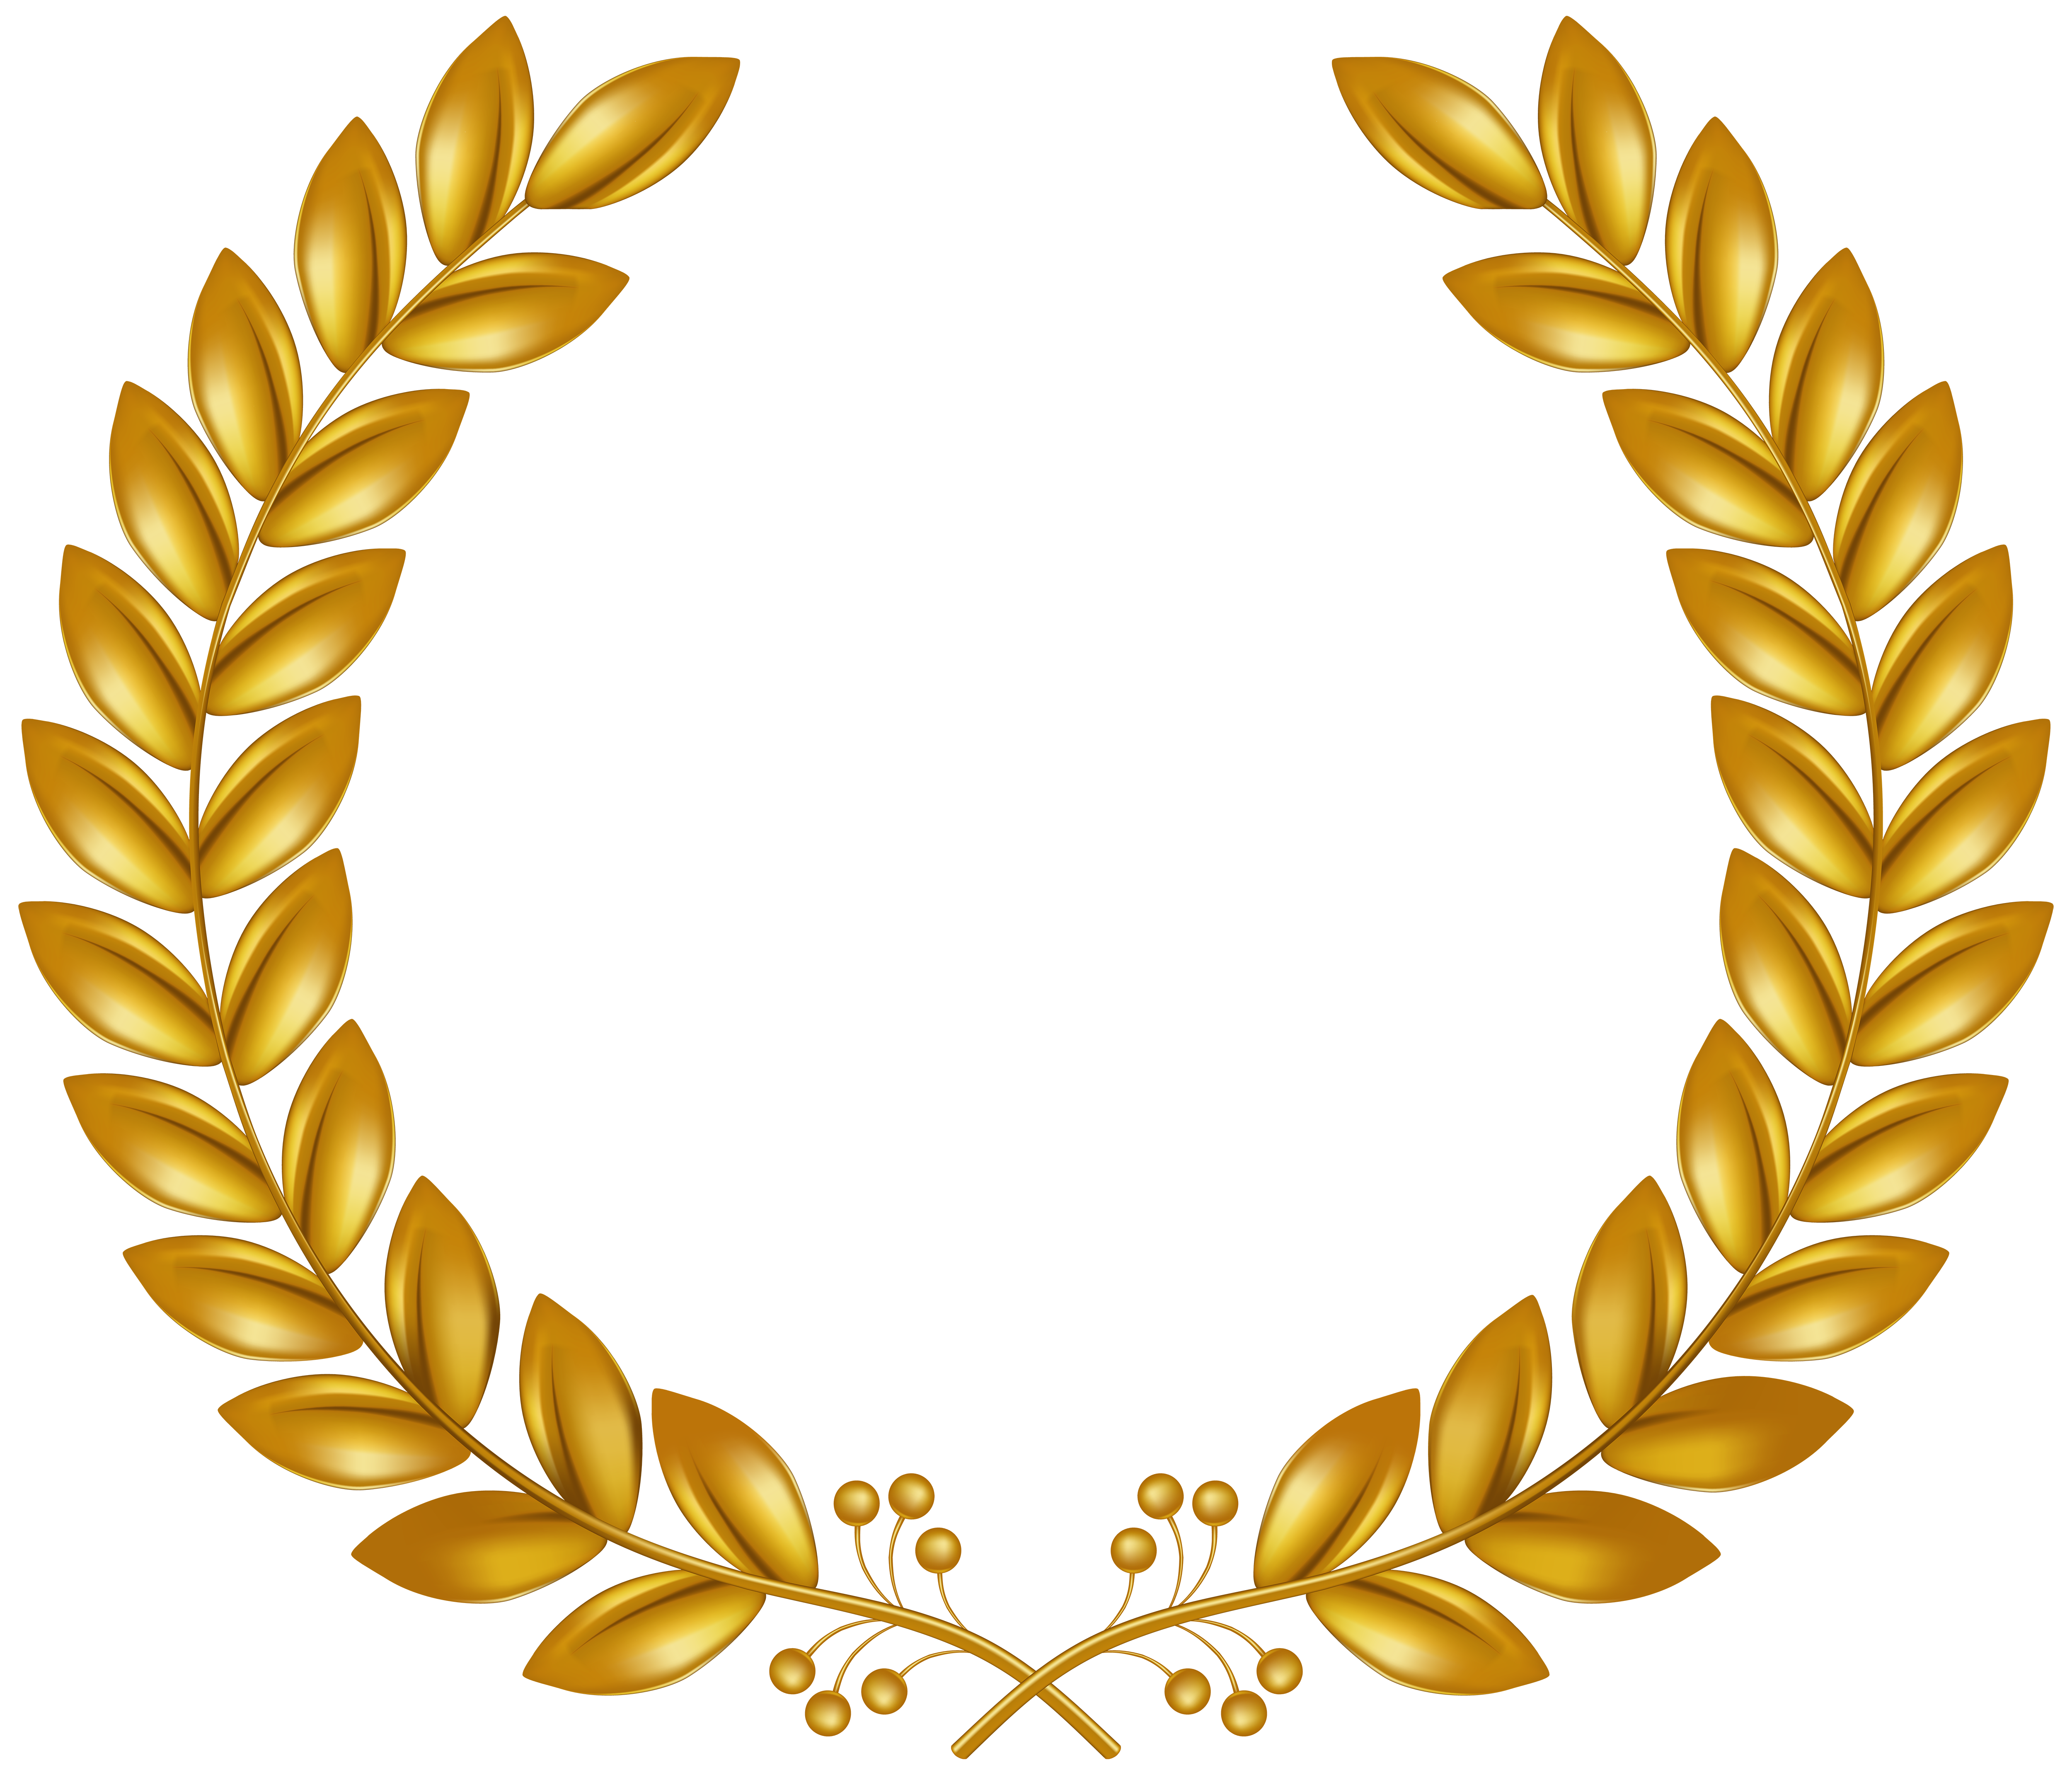 Golden Wreath Transparent Png Clip Art Gallery Yopriceville High Quality Images And Transparent Png Free Clipart Golden Wreath Logo Design Art Clip Art